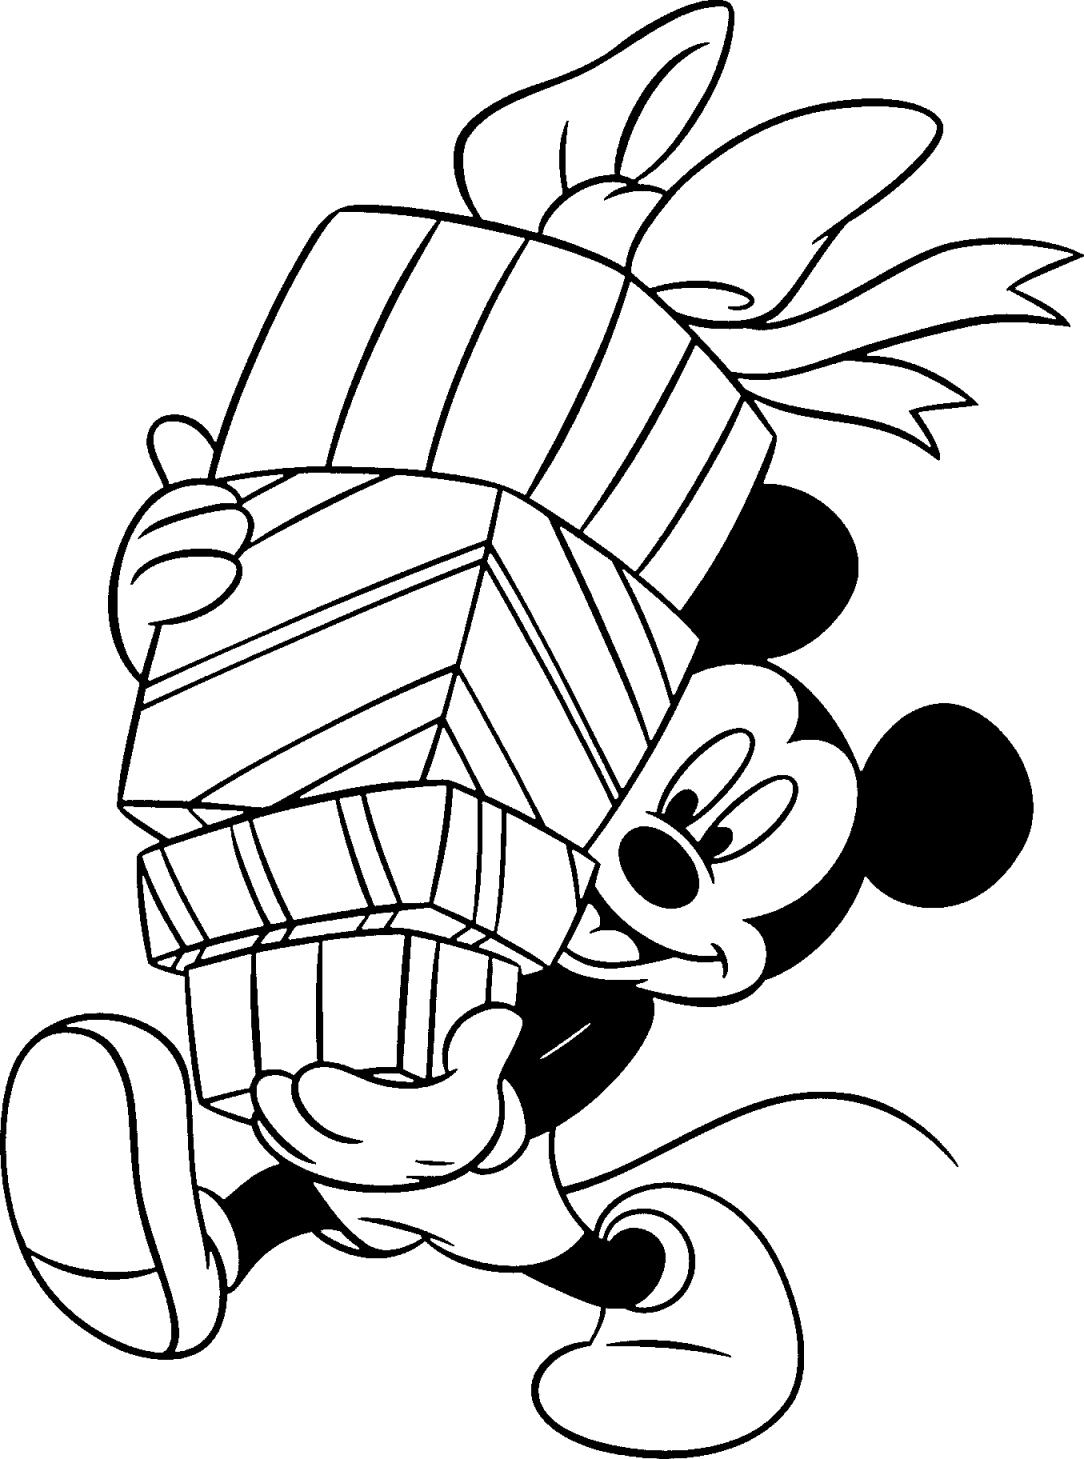 Coloring Pages Mickey Mouse Birthday : Birthday mickey mouse coloring pages pinterest